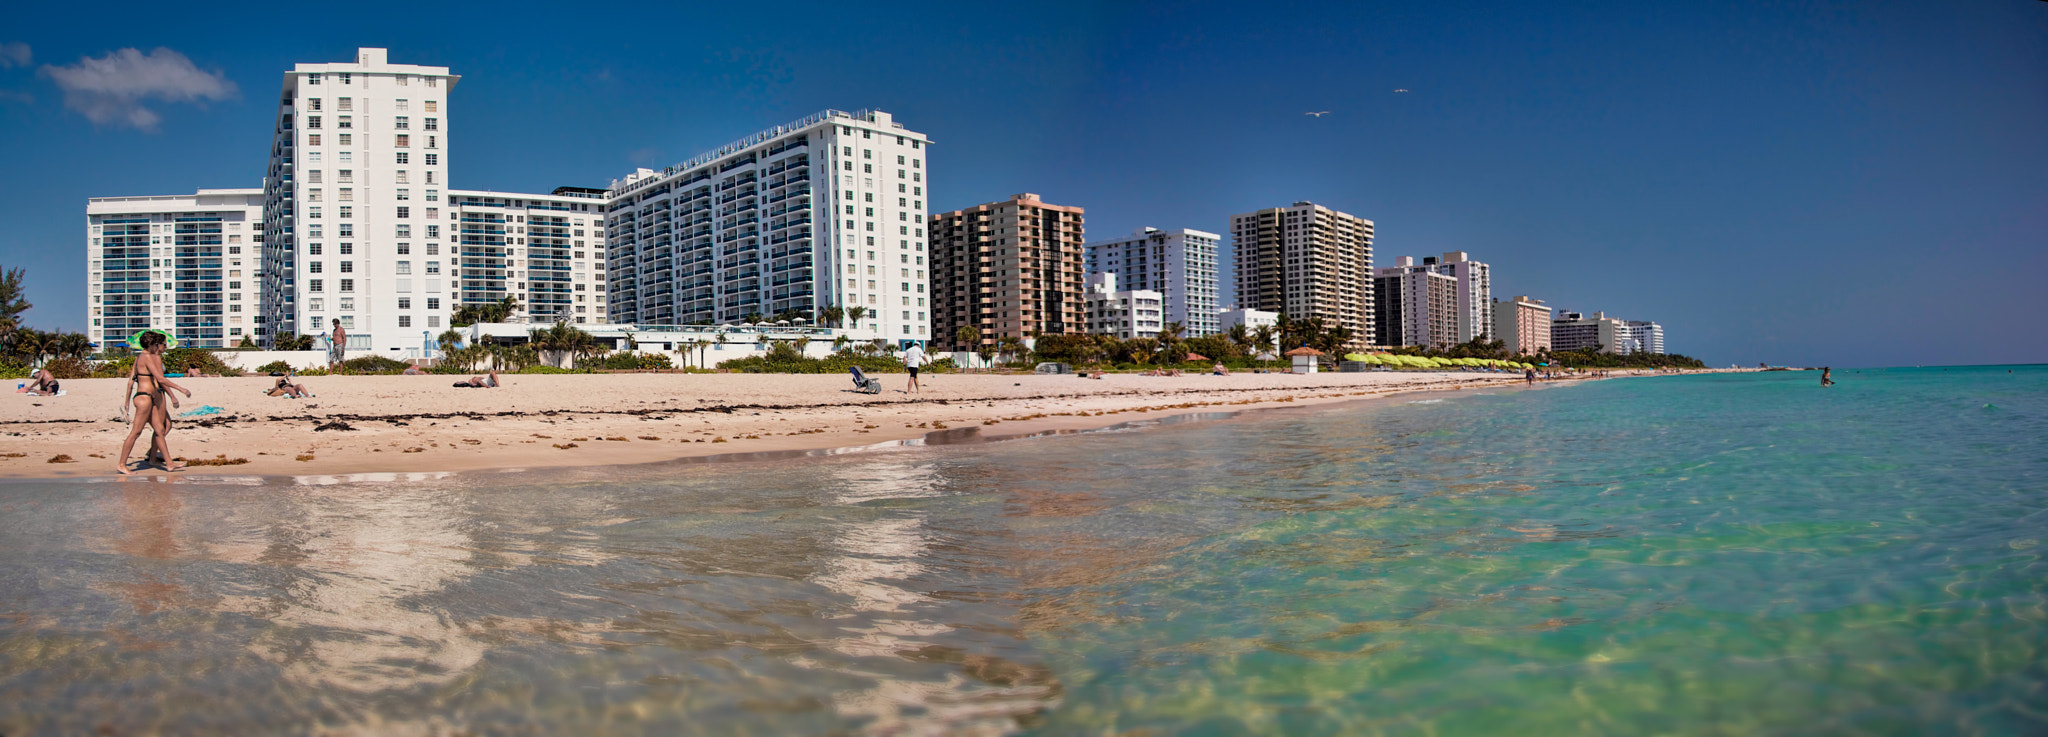 Photograph Miami Beach Pano by Mauricio Lima on 500px